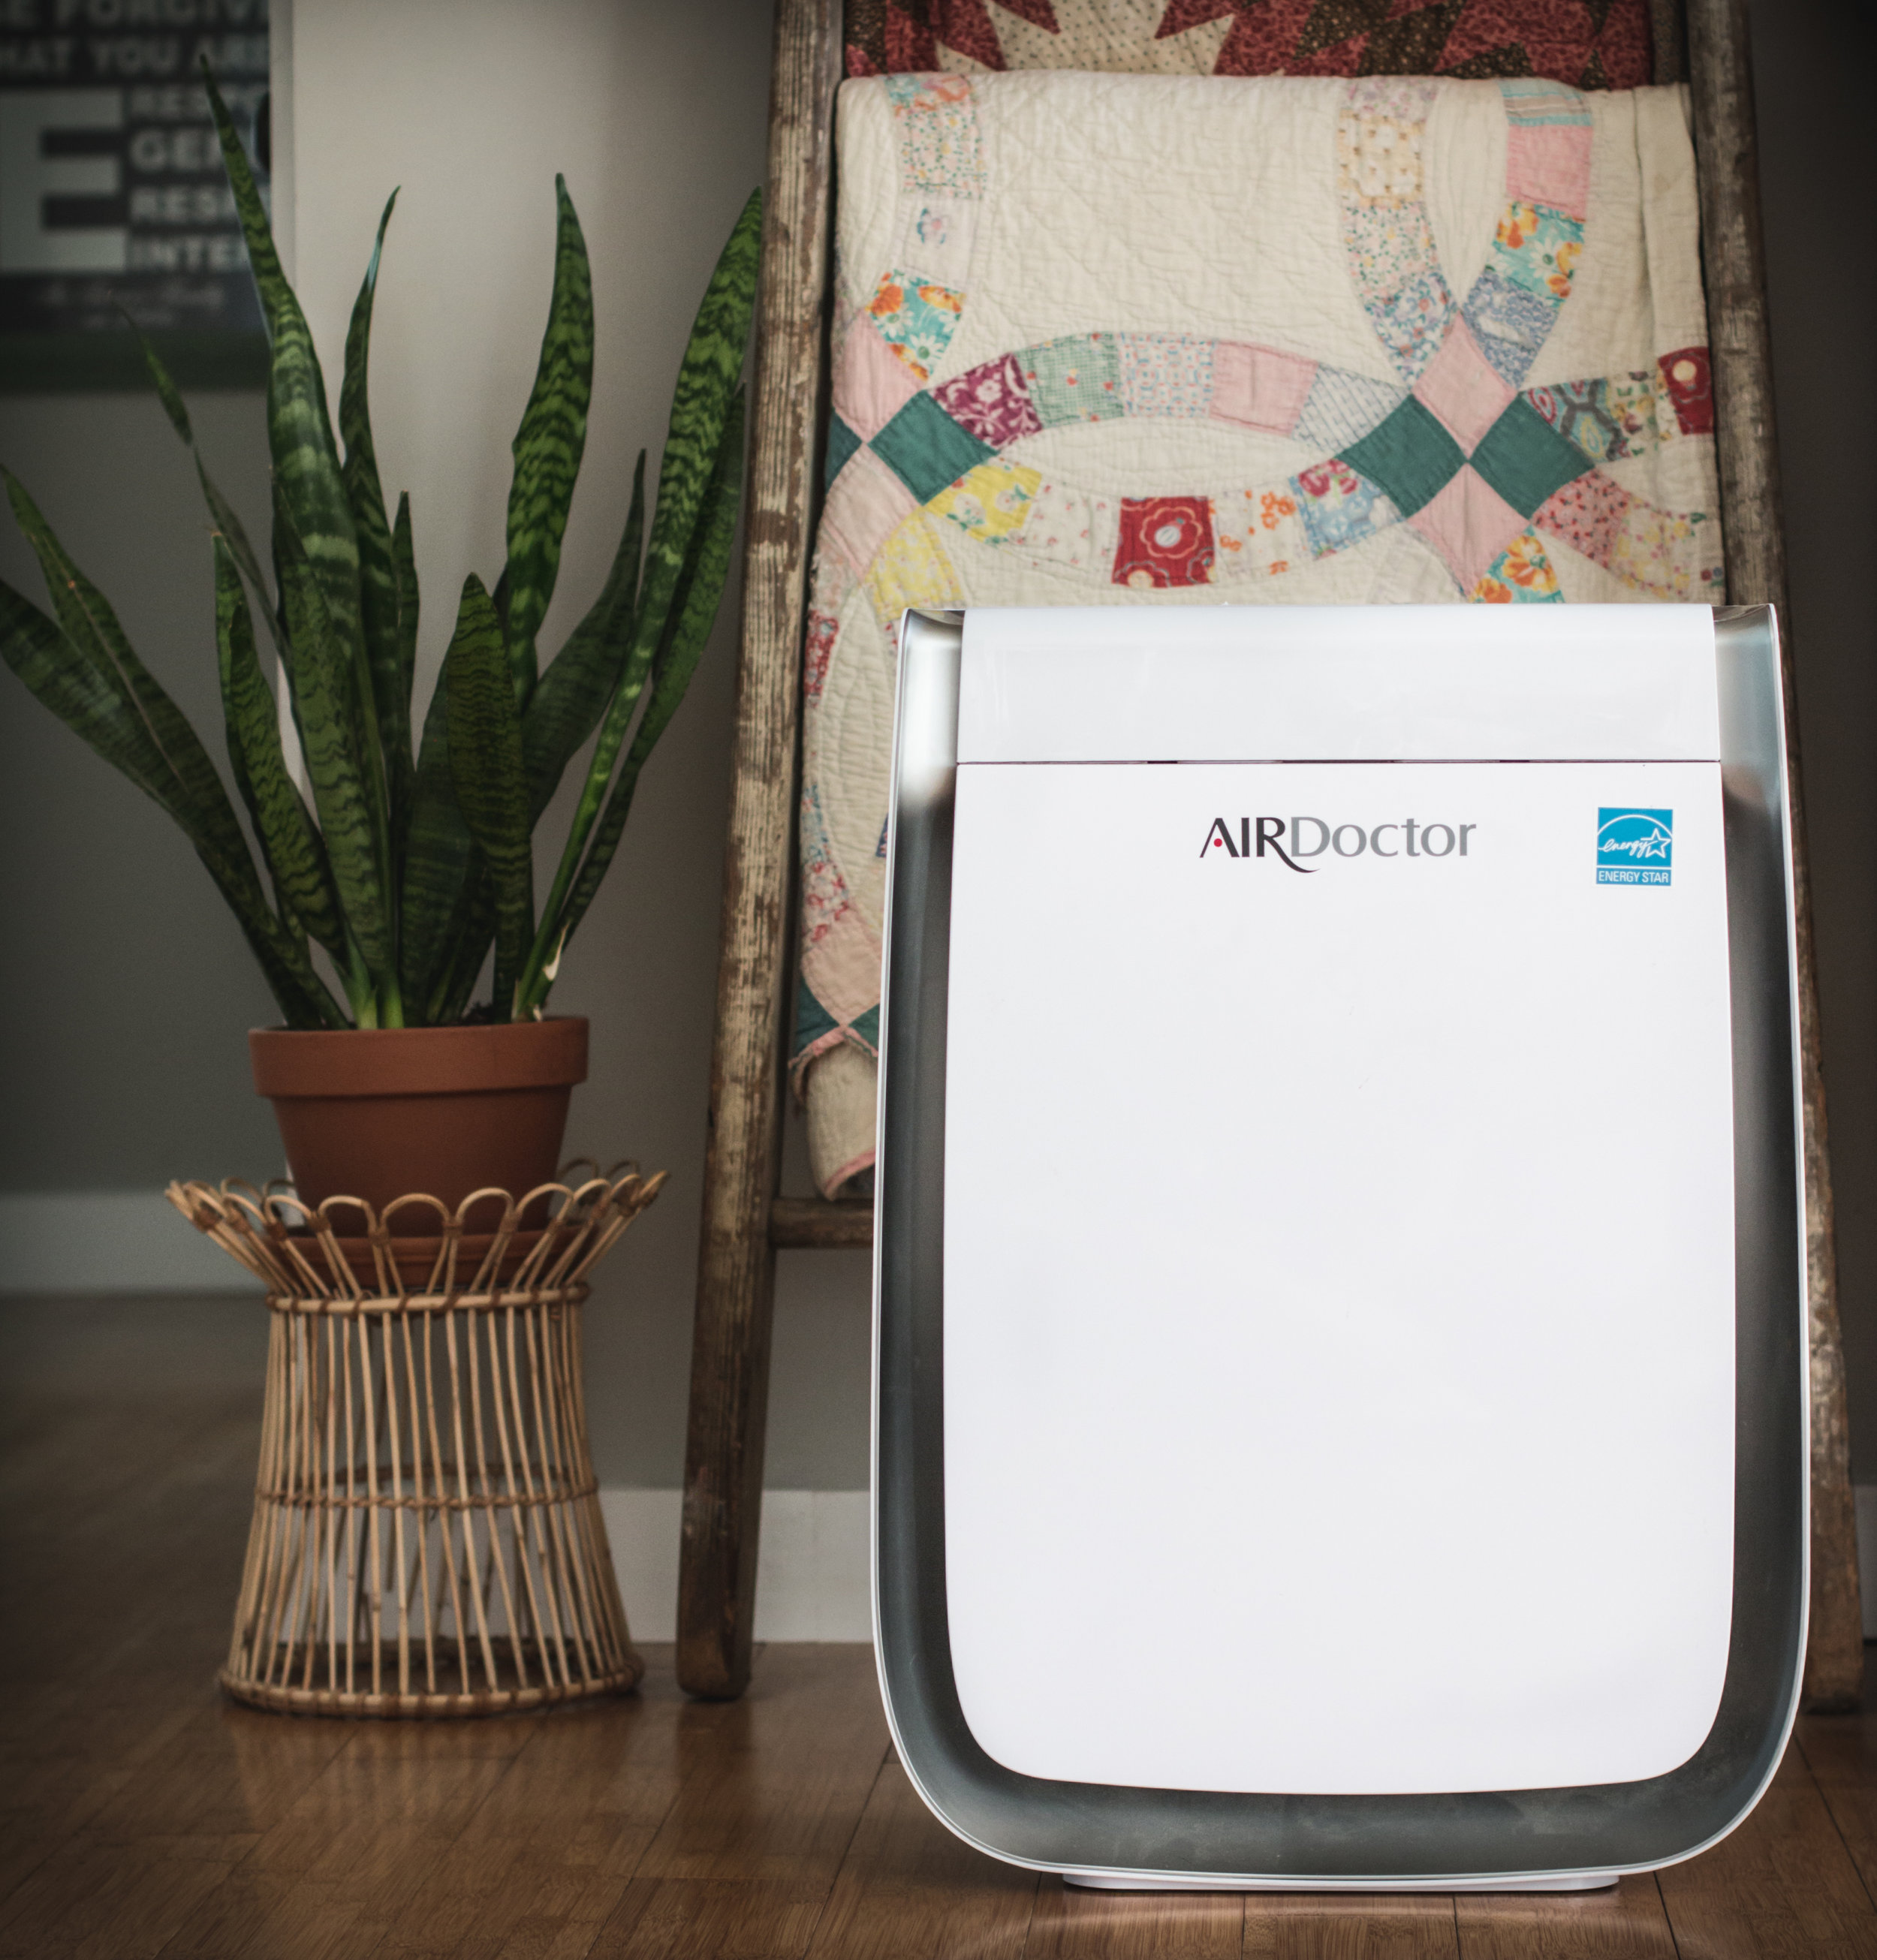 Air Doctor - Effective, professional quality air purifier